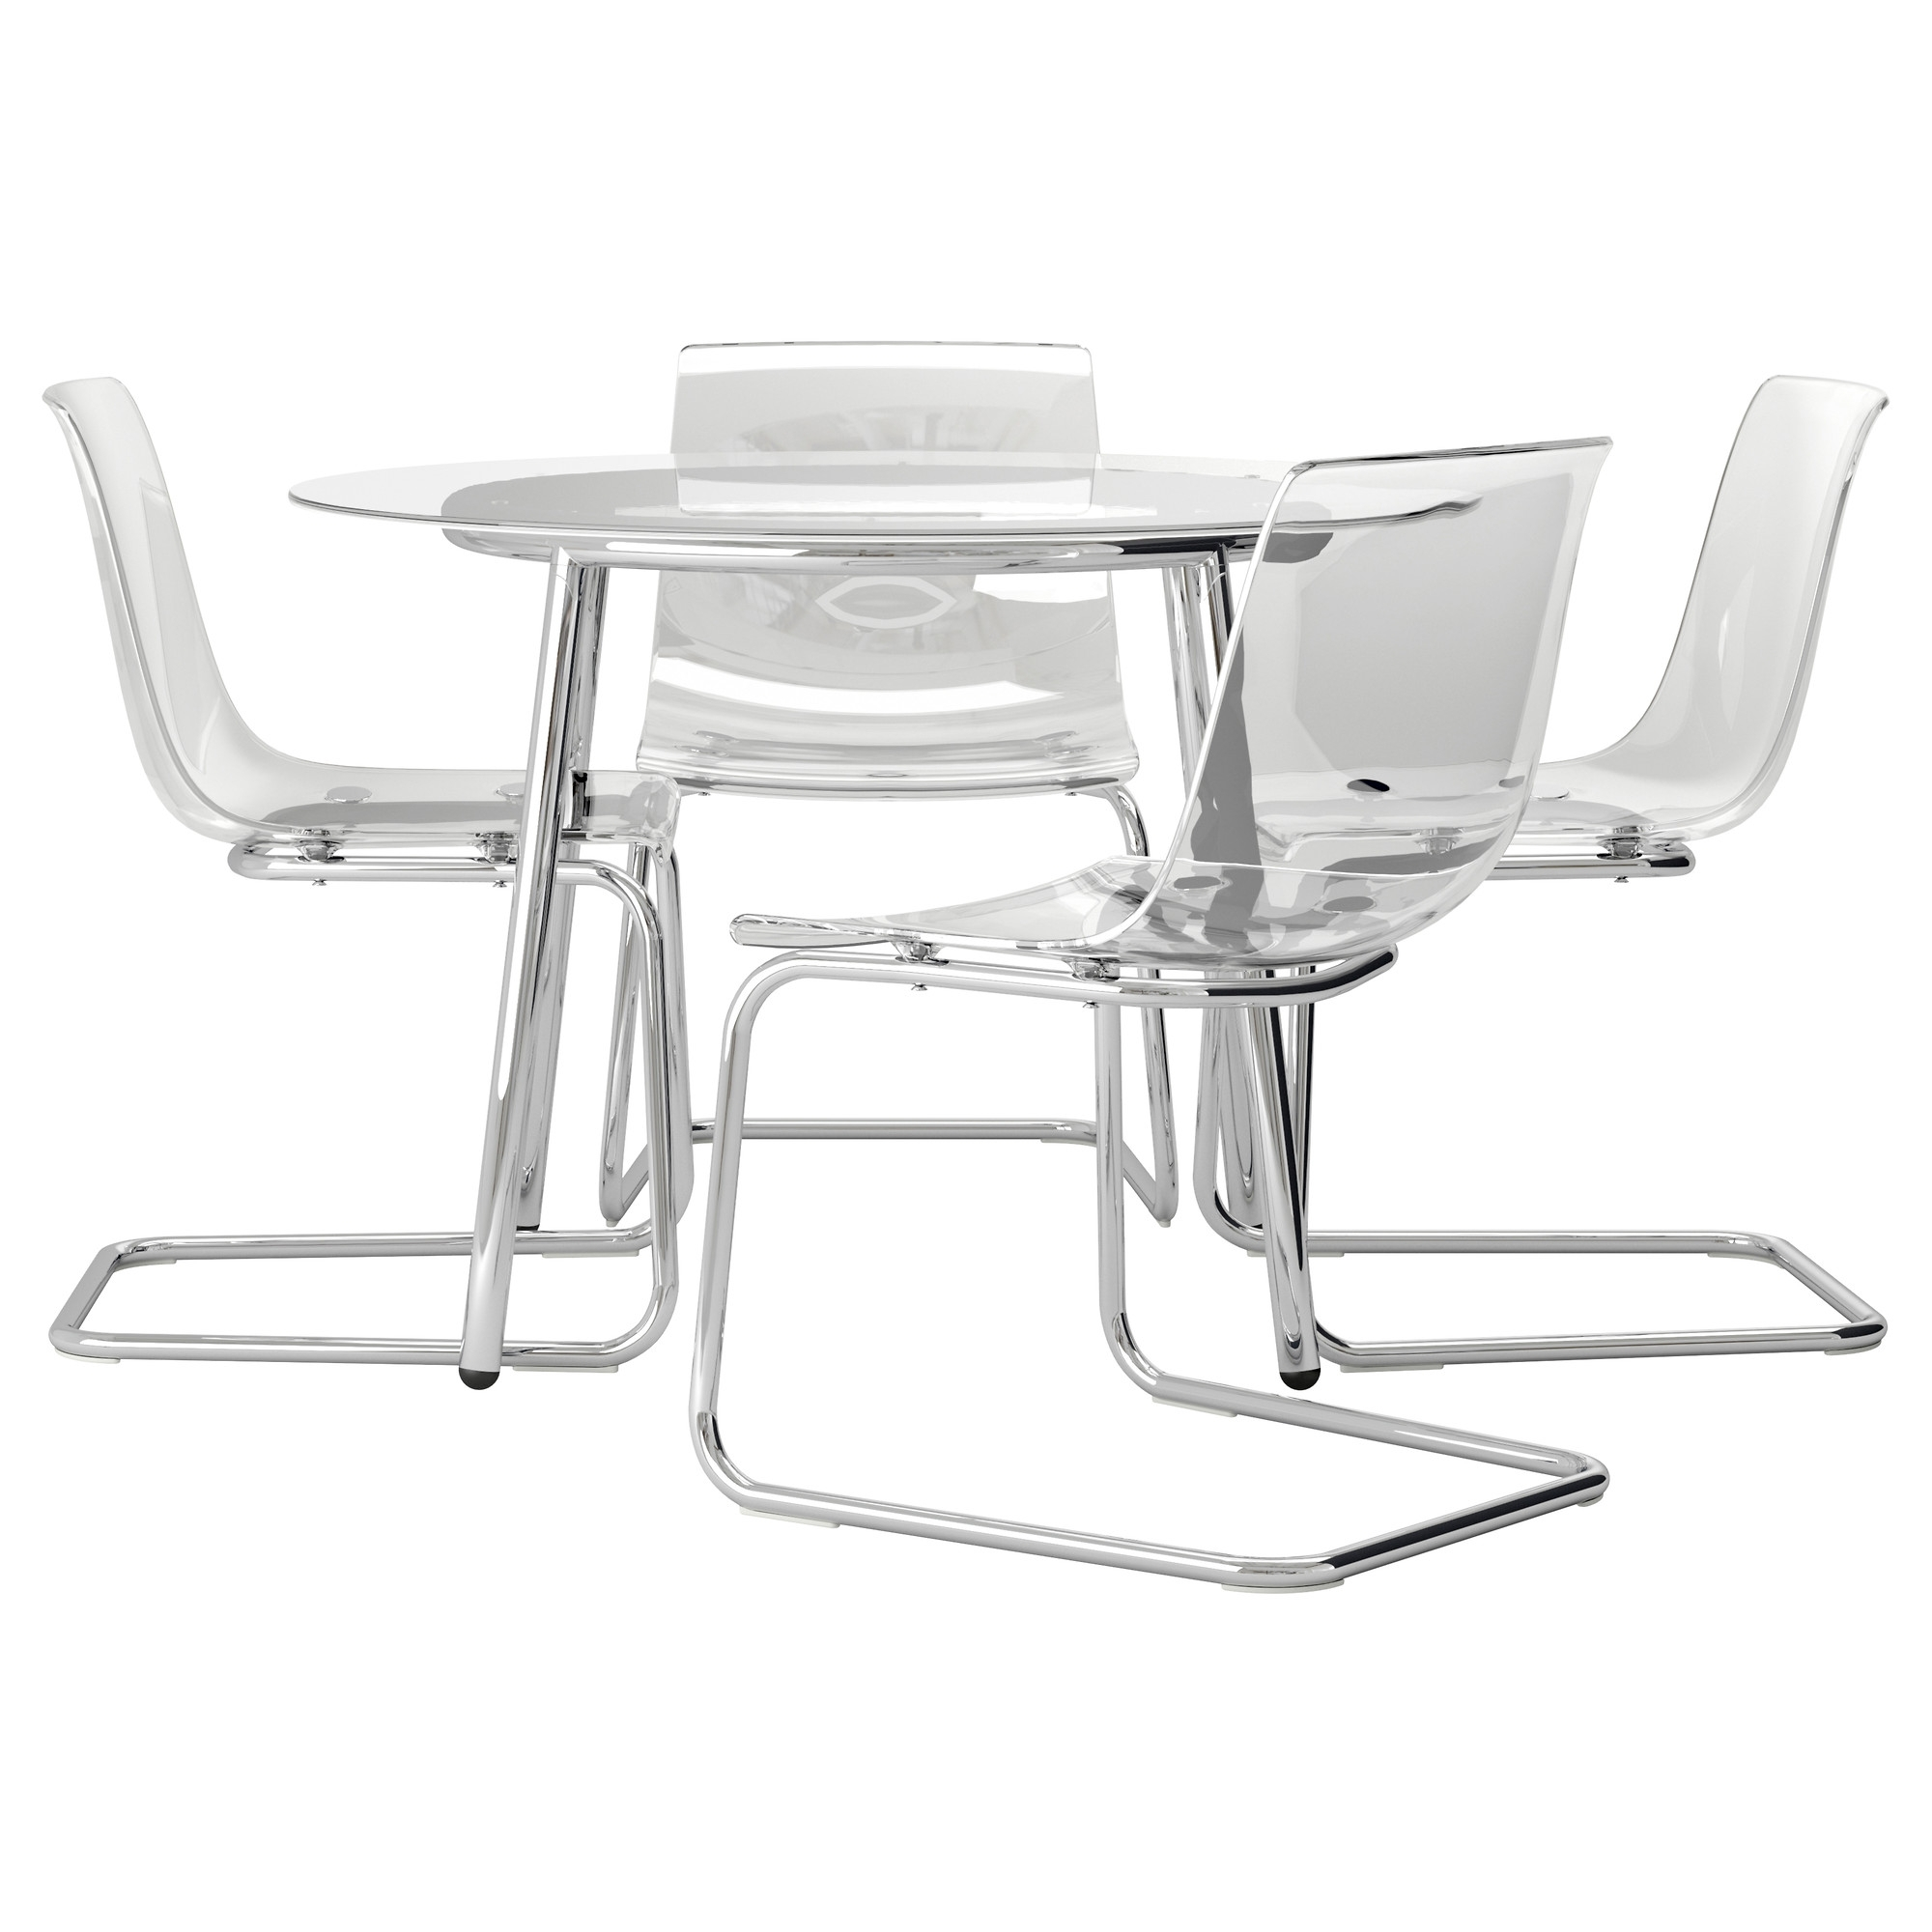 Popular Beautiful Clear Acrylic Dining Chair With Stainless Steel Frame And With Regard To Clear Glass Dining Tables And Chairs (Gallery 19 of 25)